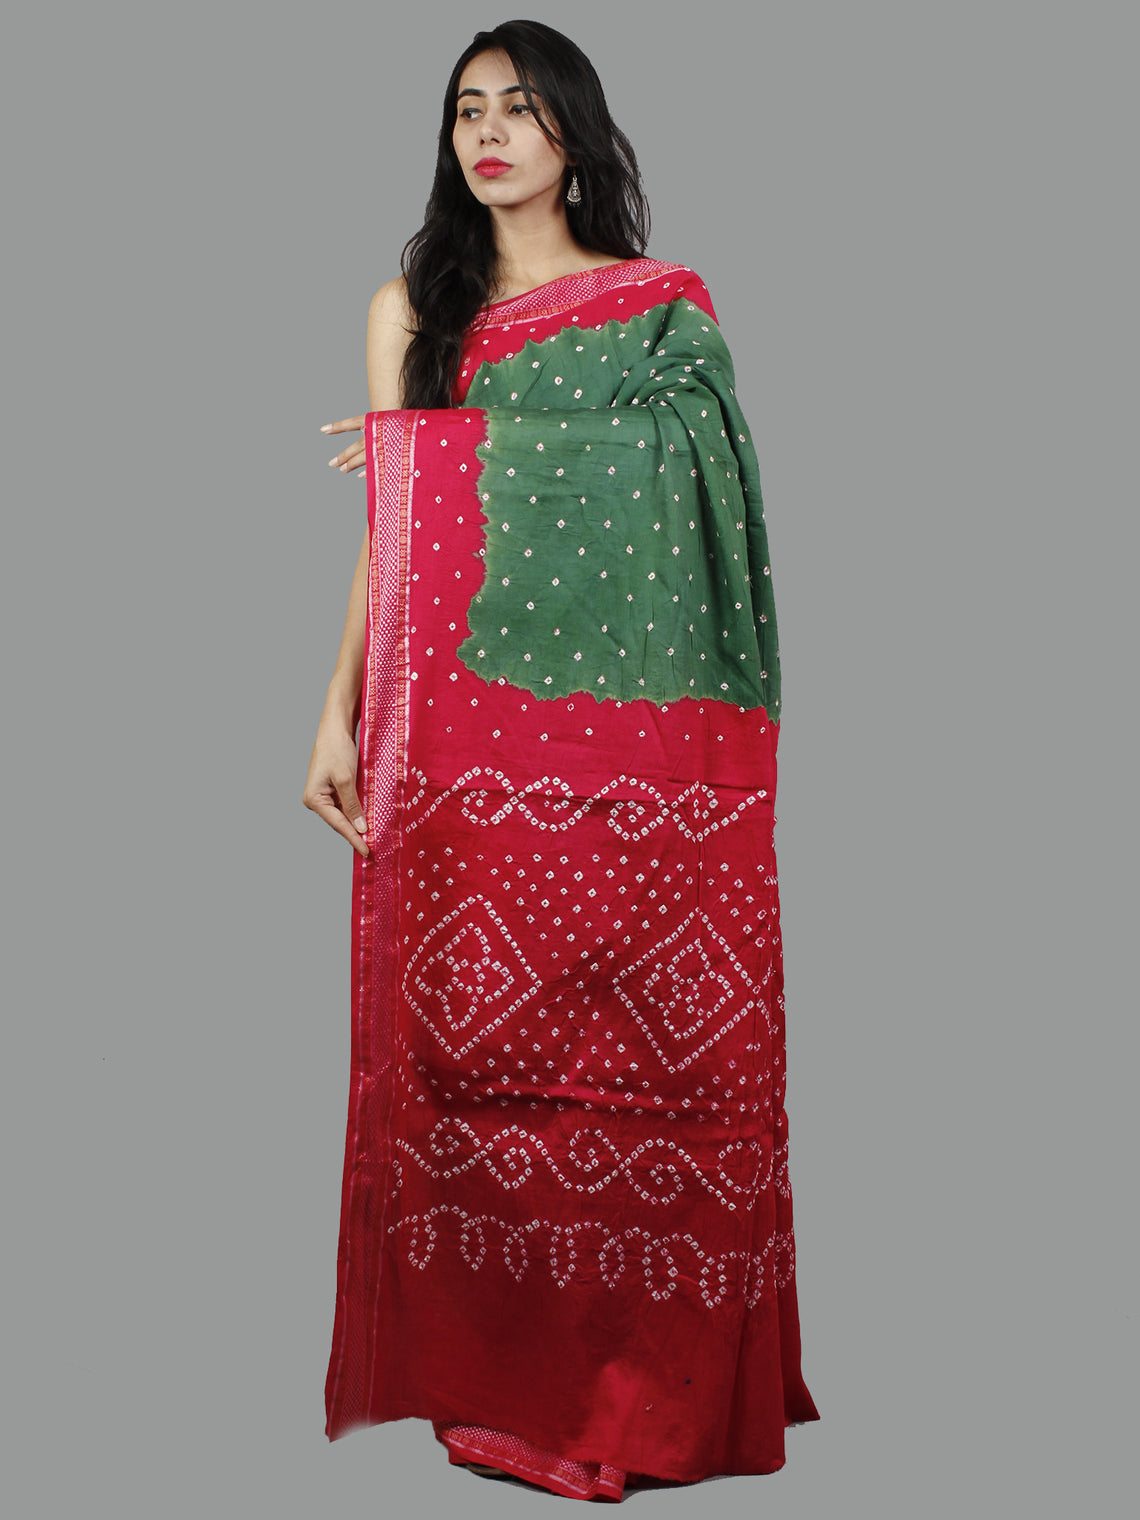 Red and Dark Green Hand Tie & Dye Bandhej Glace Cotton Saree With Resham Border - S031701399